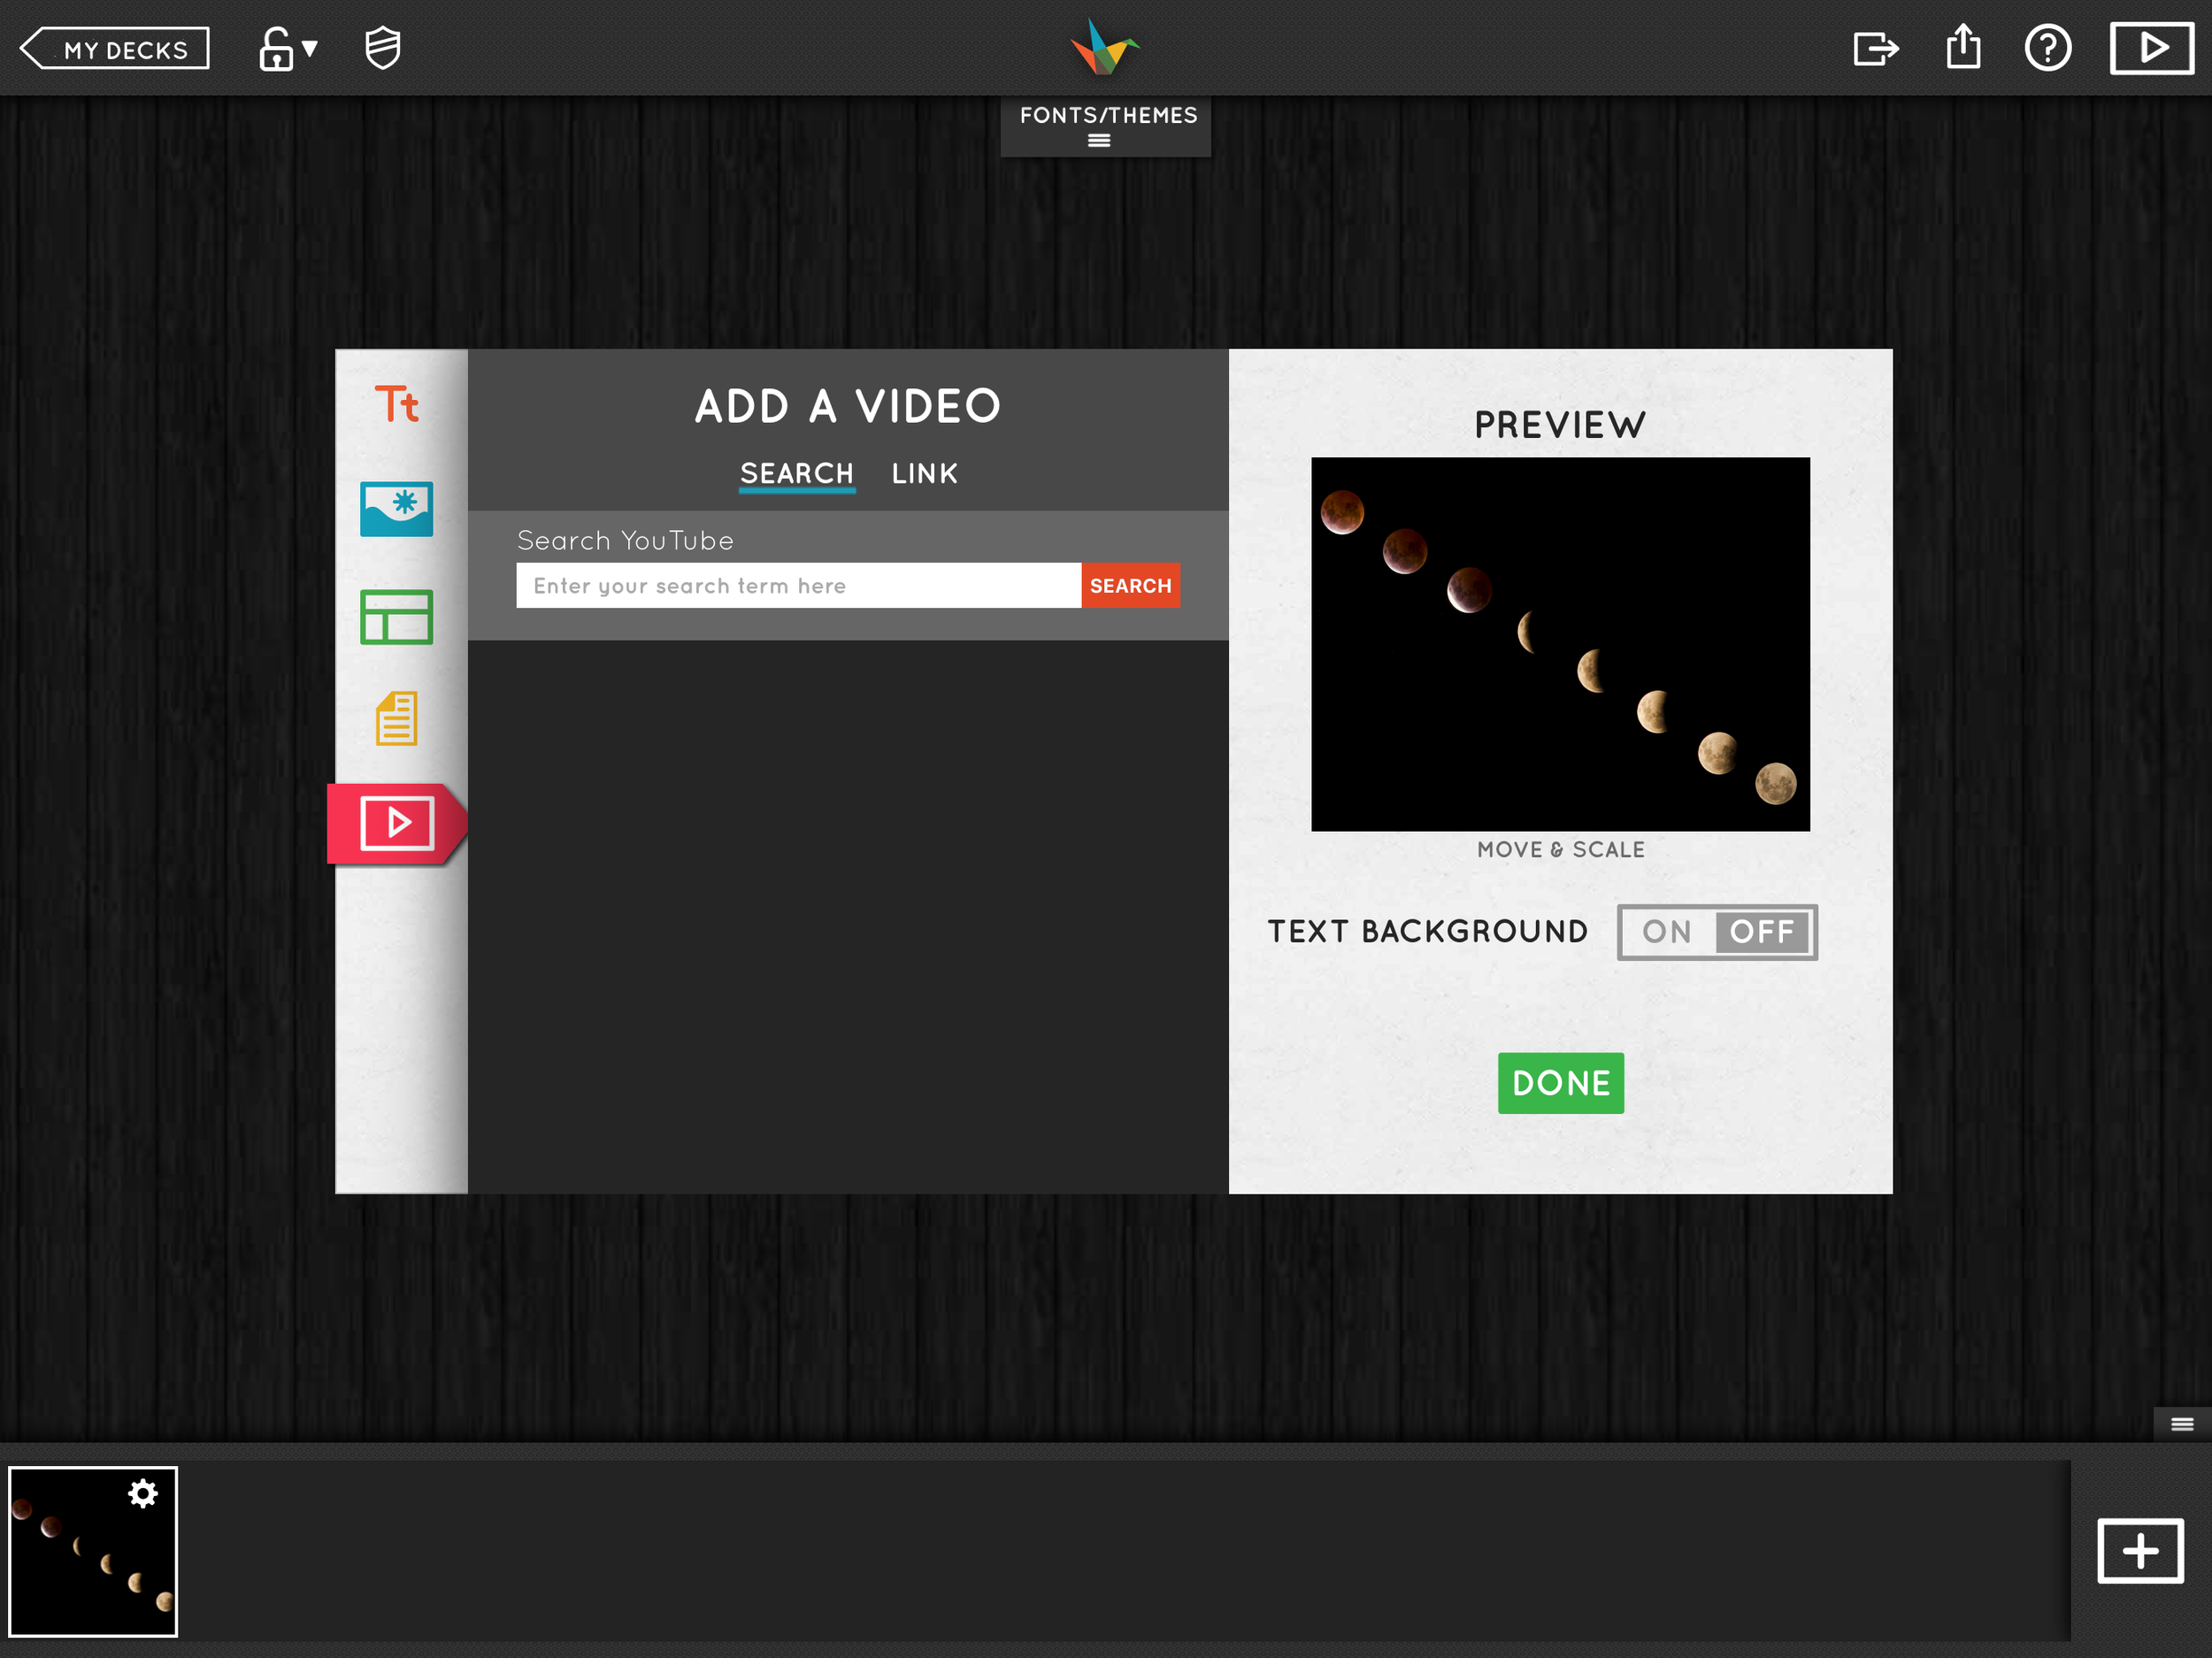 Quickly add a video clip with easy access to YouTube.